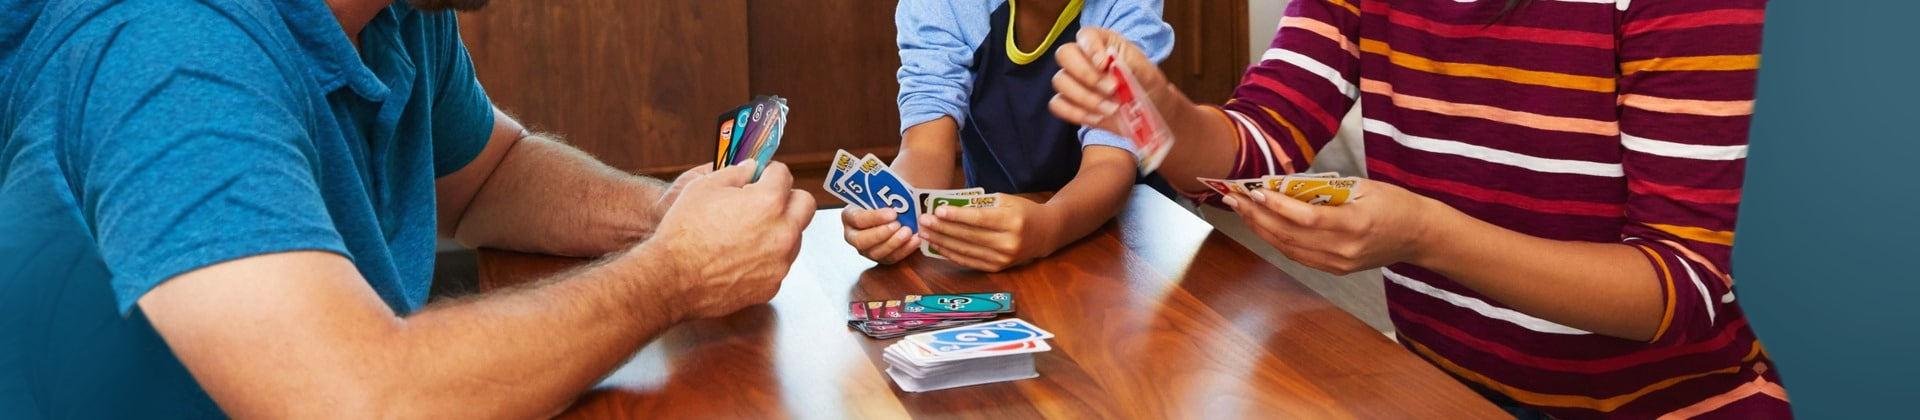 Best Family Card Games Selection